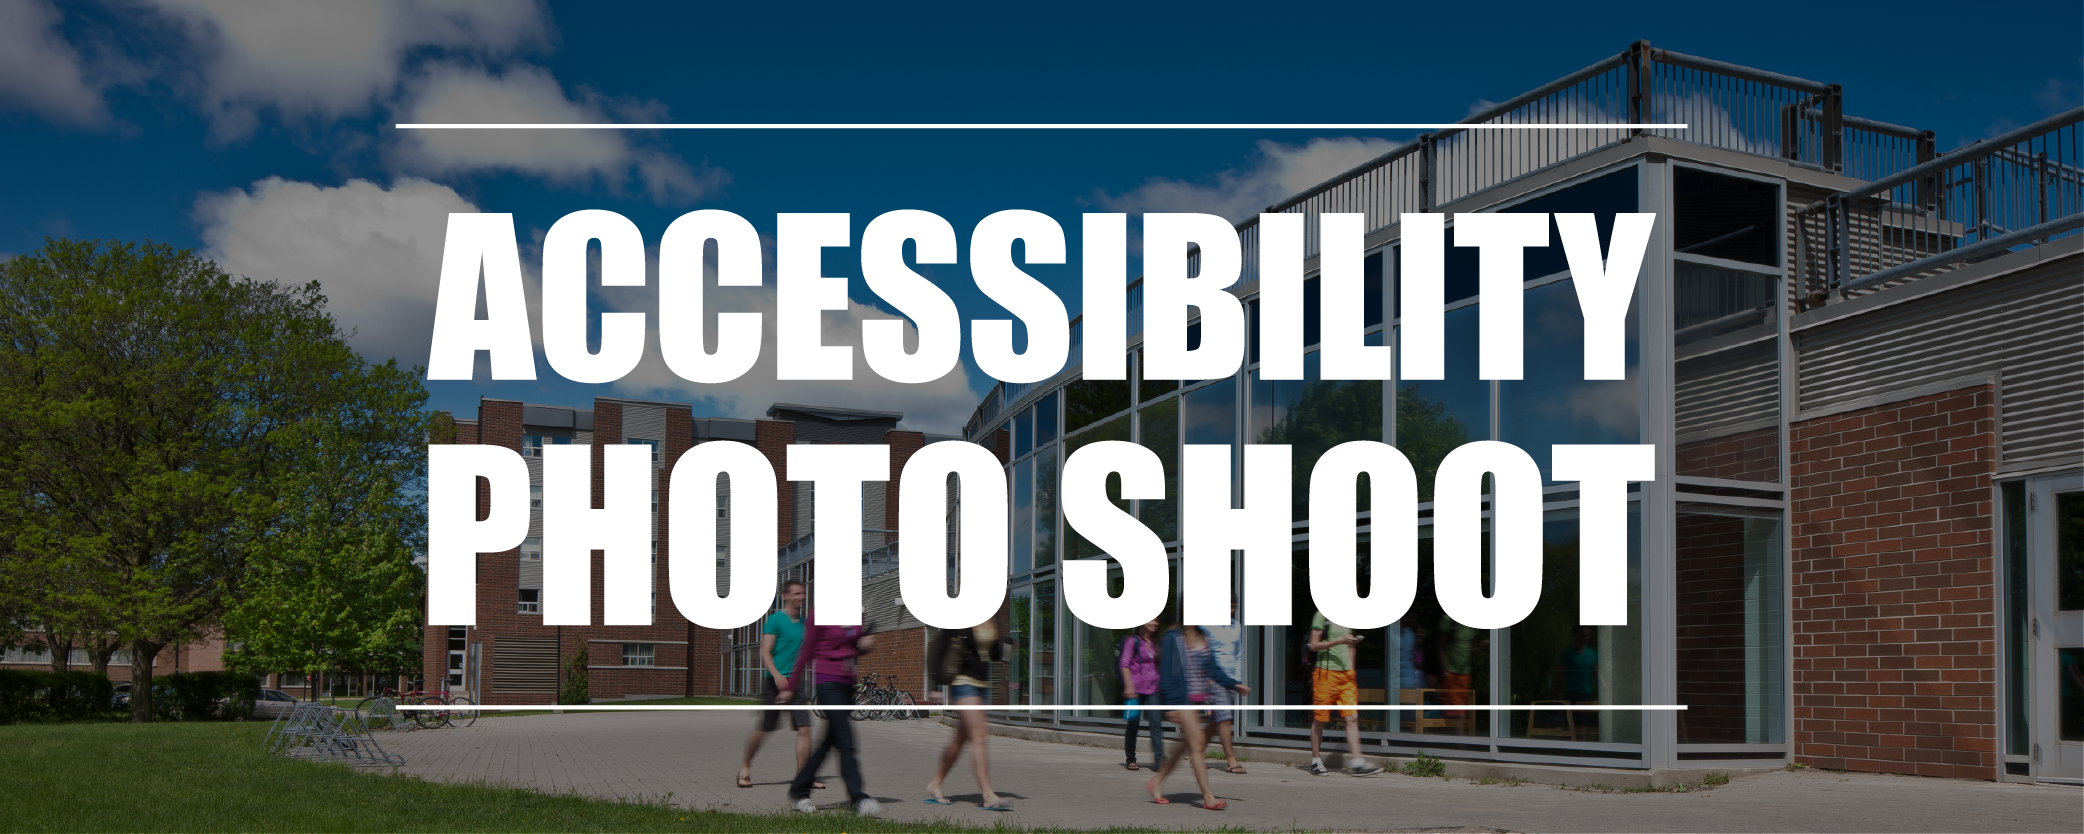 Accessibility Photo Shoot banner